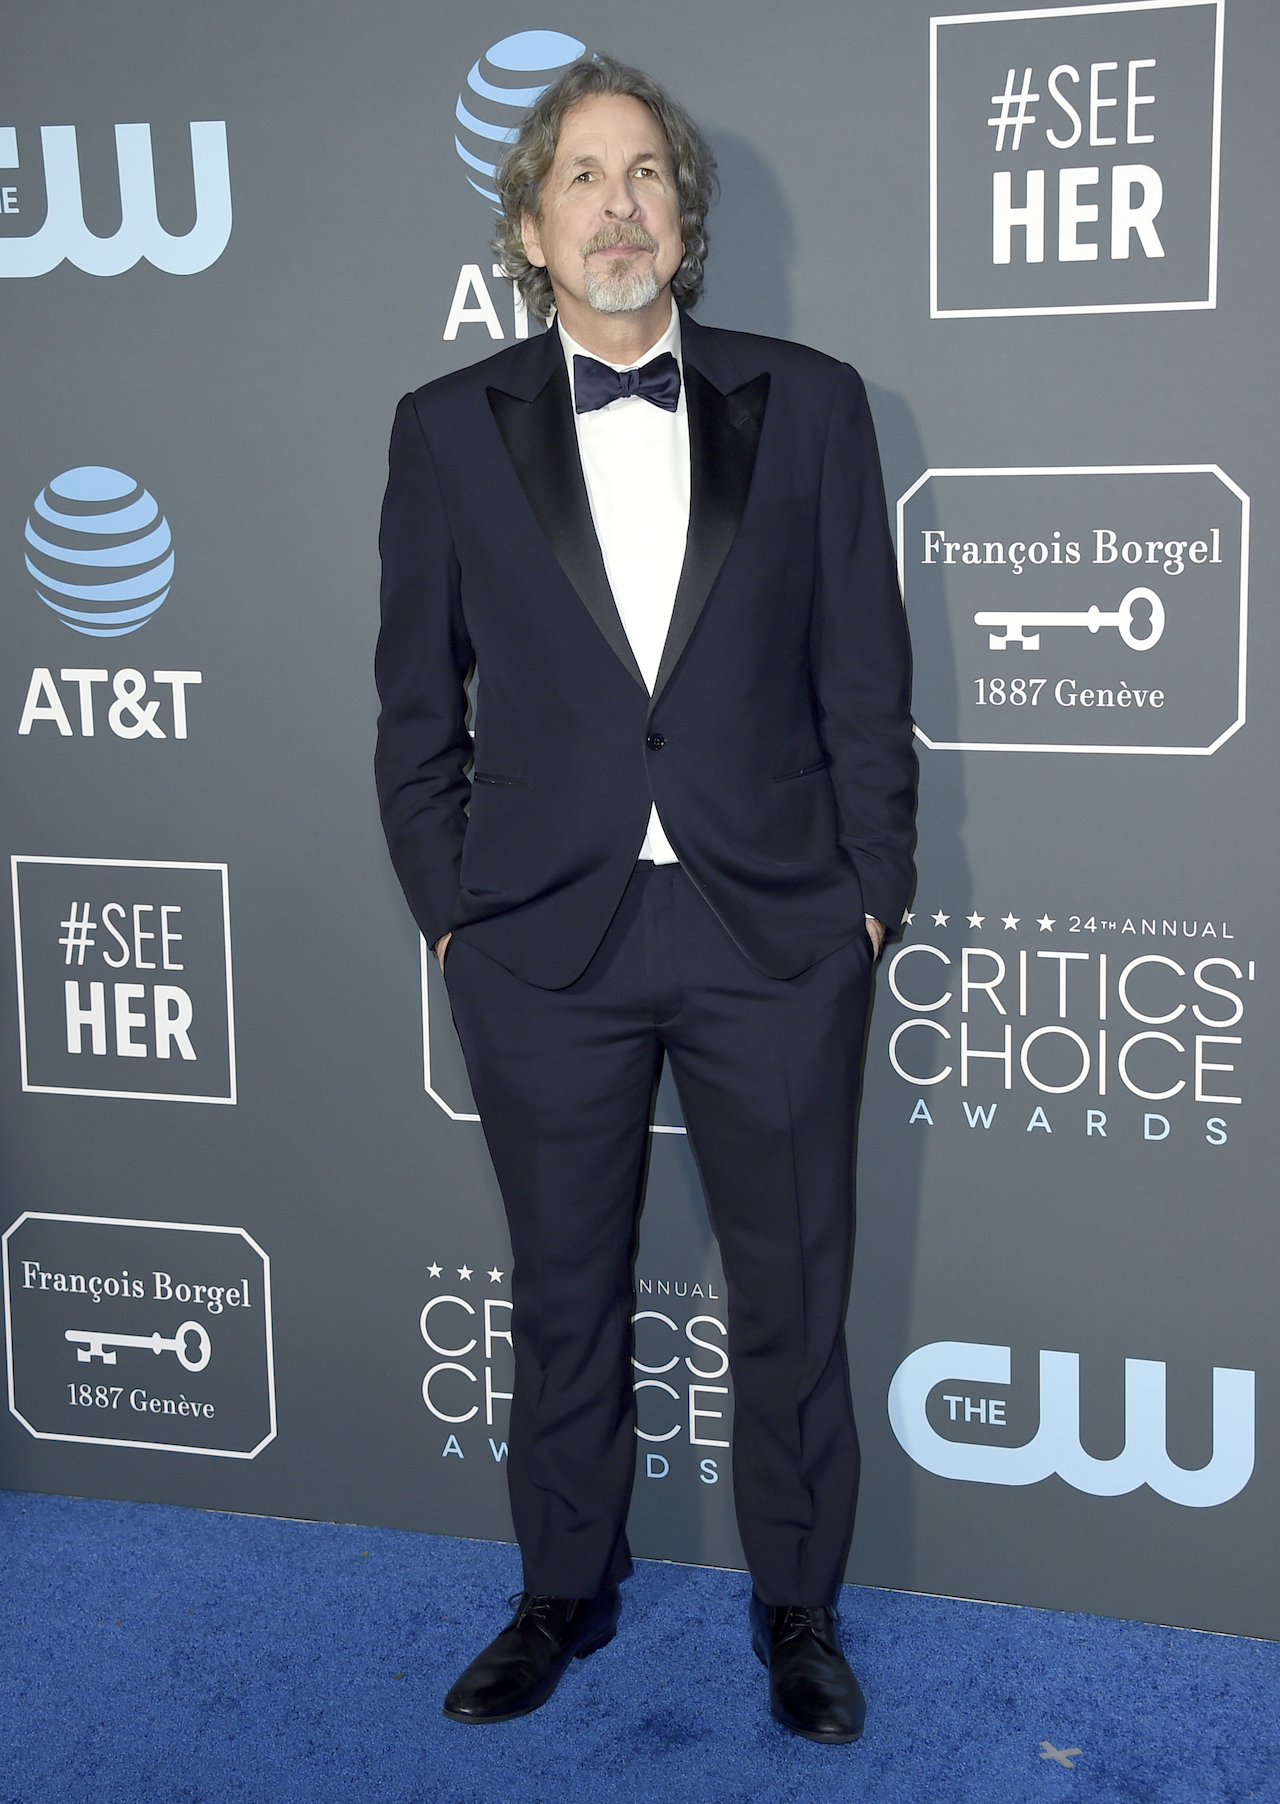 "<div class=""meta image-caption""><div class=""origin-logo origin-image ap""><span>AP</span></div><span class=""caption-text"">Peter Farrelly arrives at the 24th annual Critics' Choice Awards on Sunday, Jan. 13, 2019, at the Barker Hangar in Santa Monica, Calif. (Jordan Strauss/Invision/AP)</span></div>"